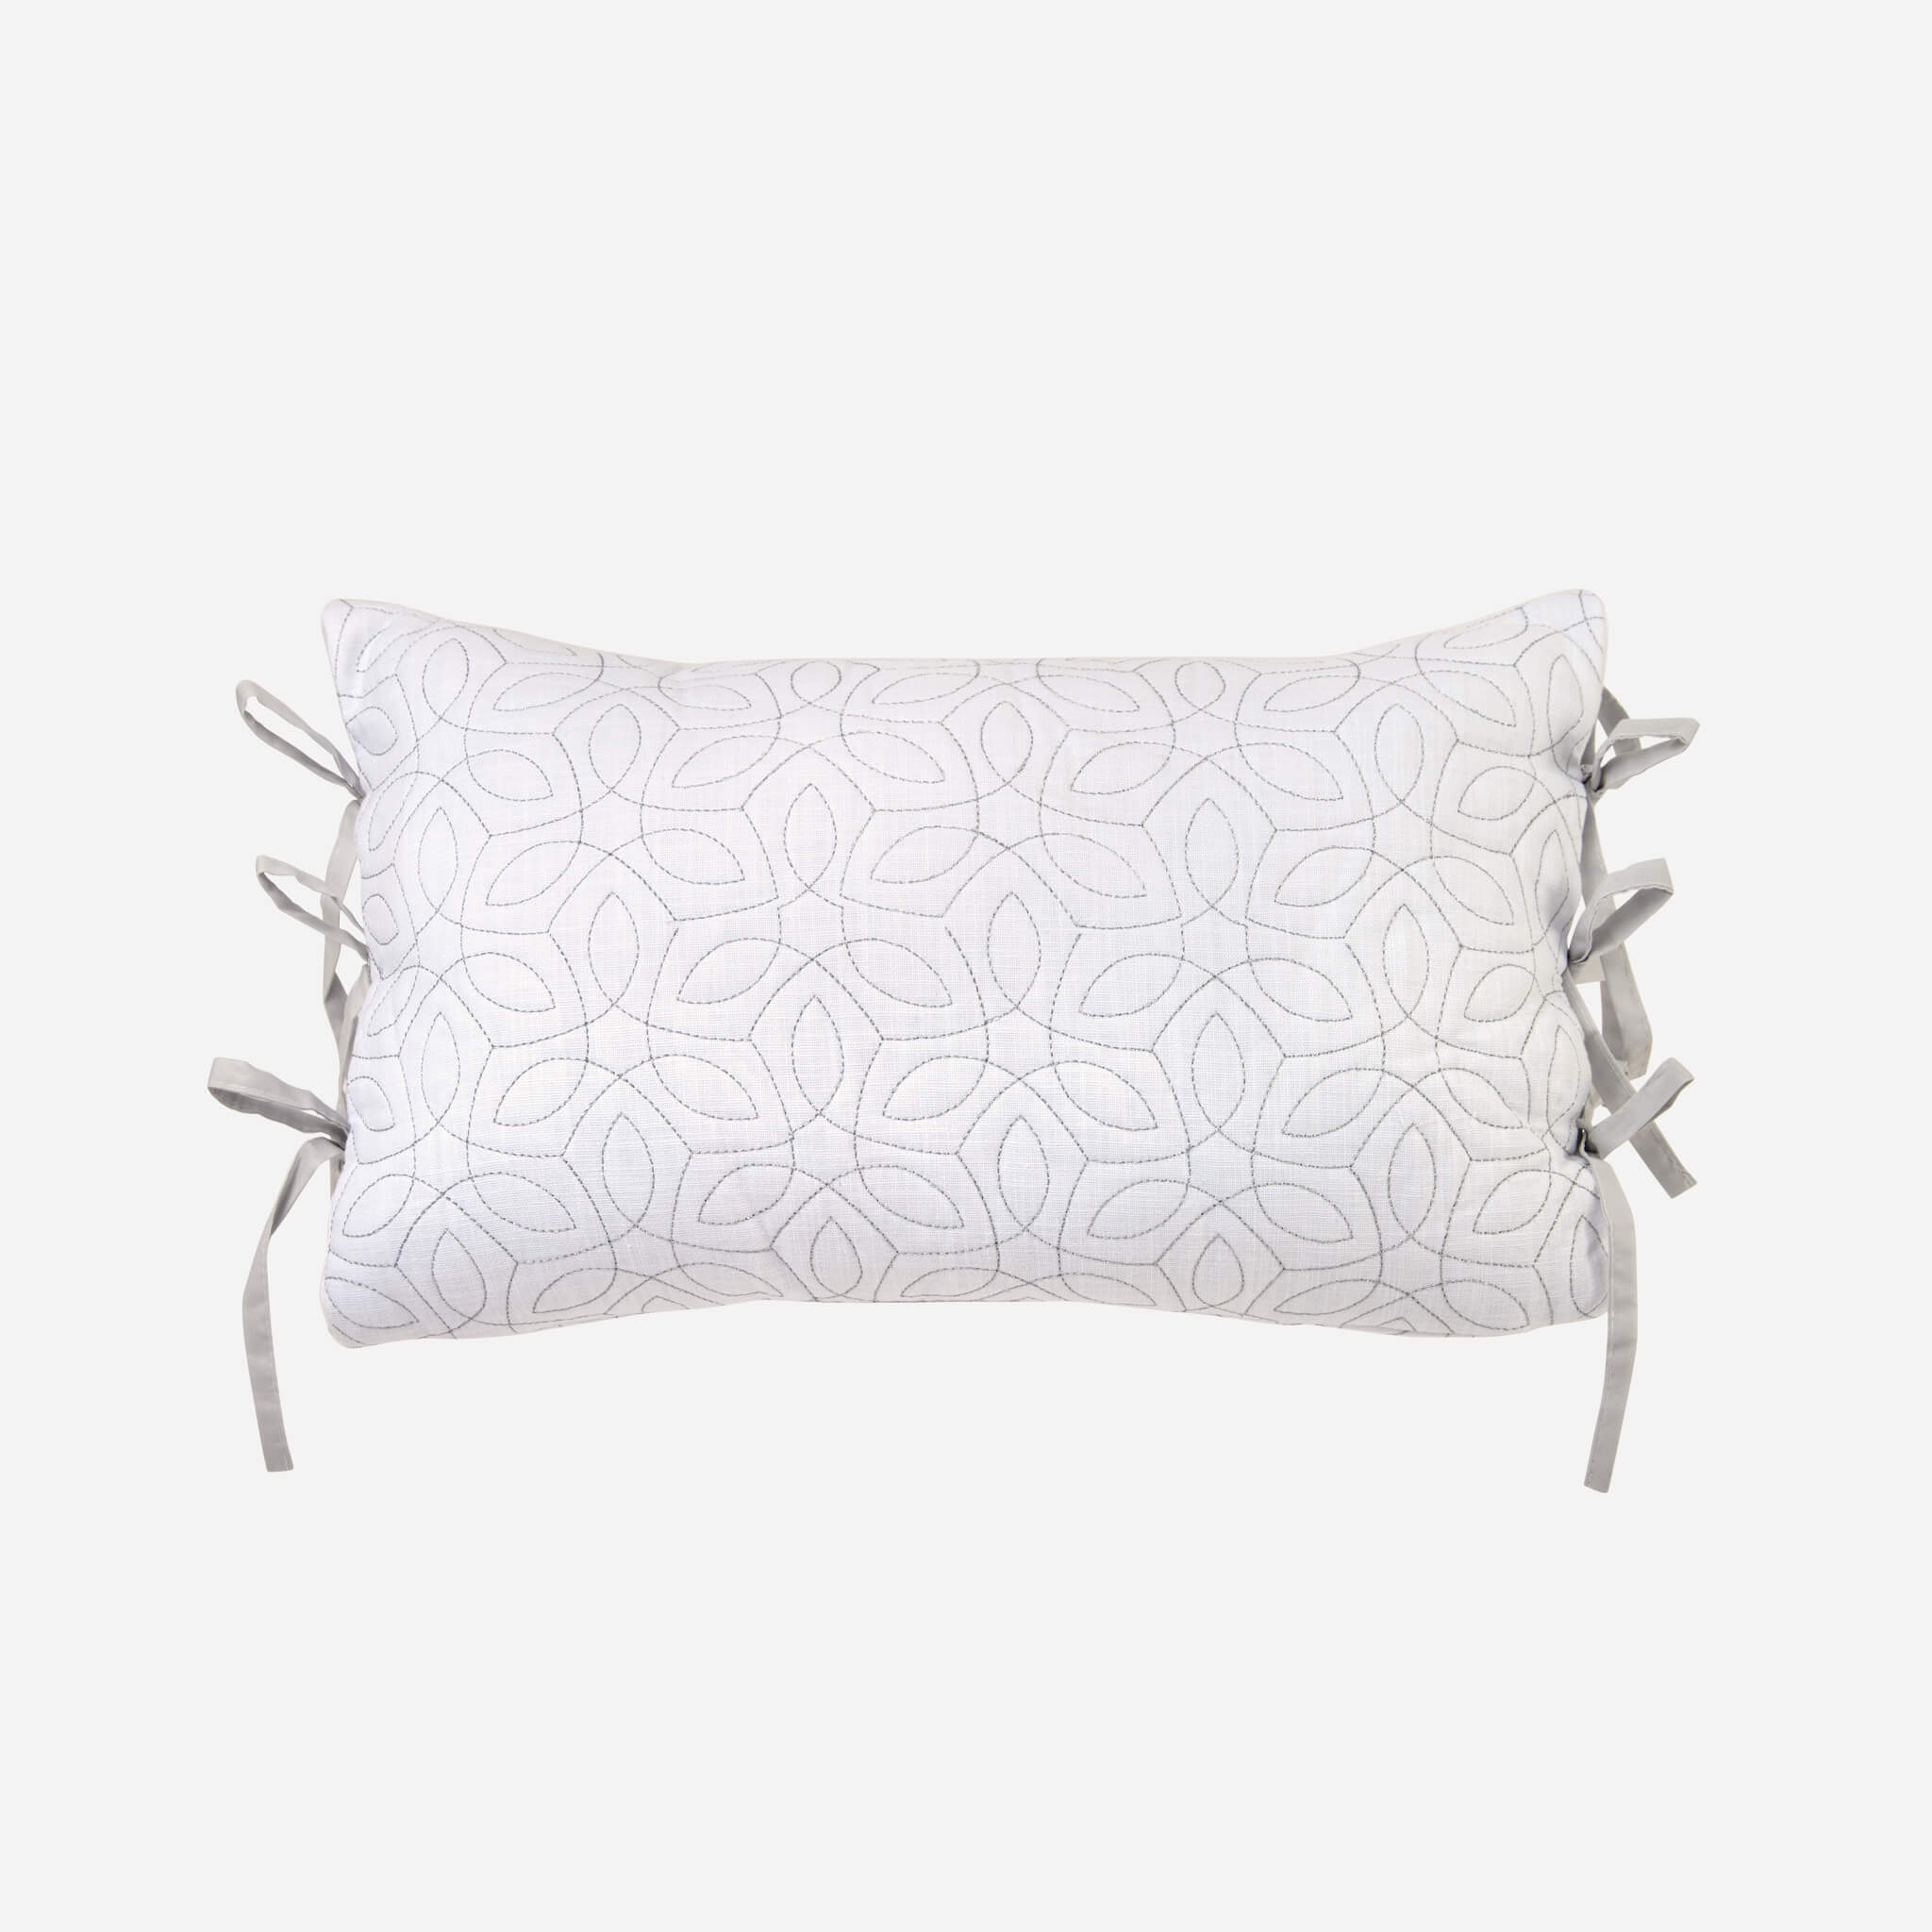 "Saffira White Boudoir Pillow 18"" x 12"" By Croscill Throw Pillows By Croscill Home LLC"